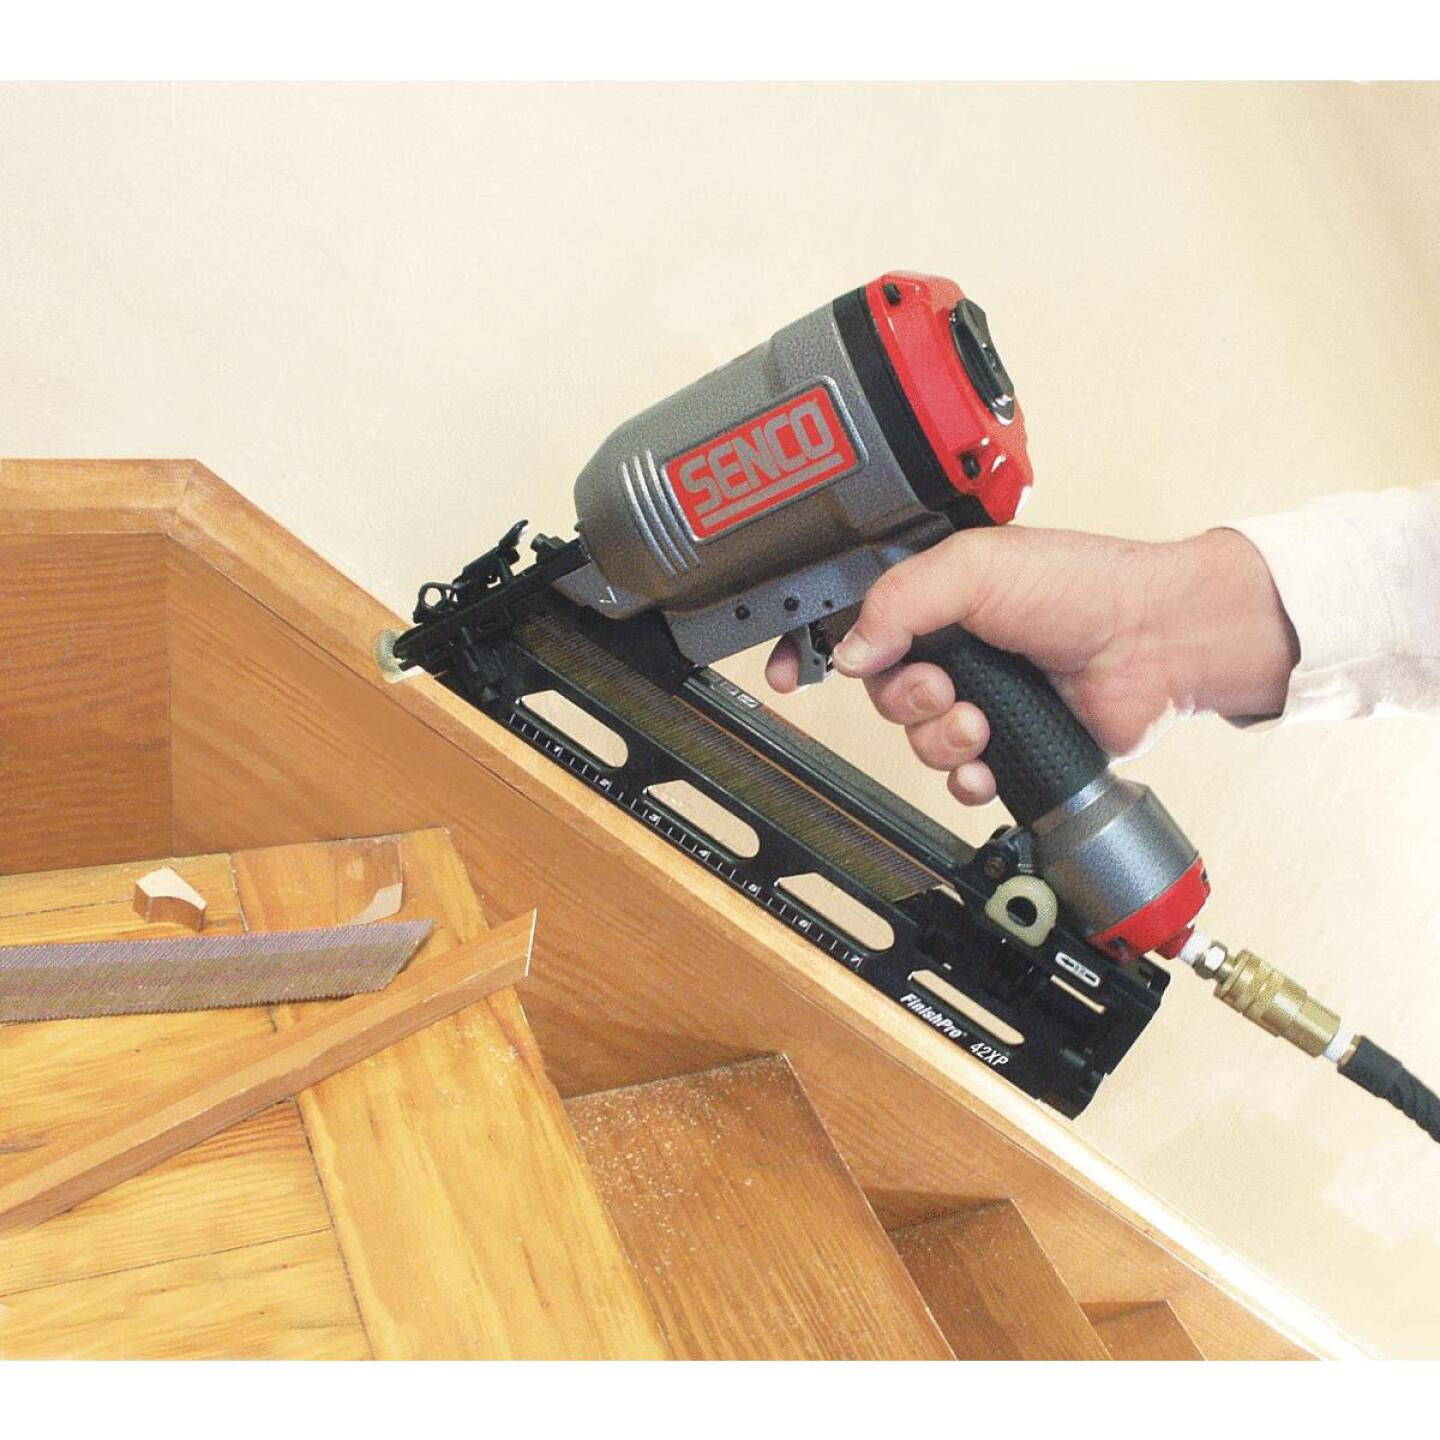 Senco FinishPro 42XP 15-Gauge 2-1/2 In. Angled Finished Nailer Image 2